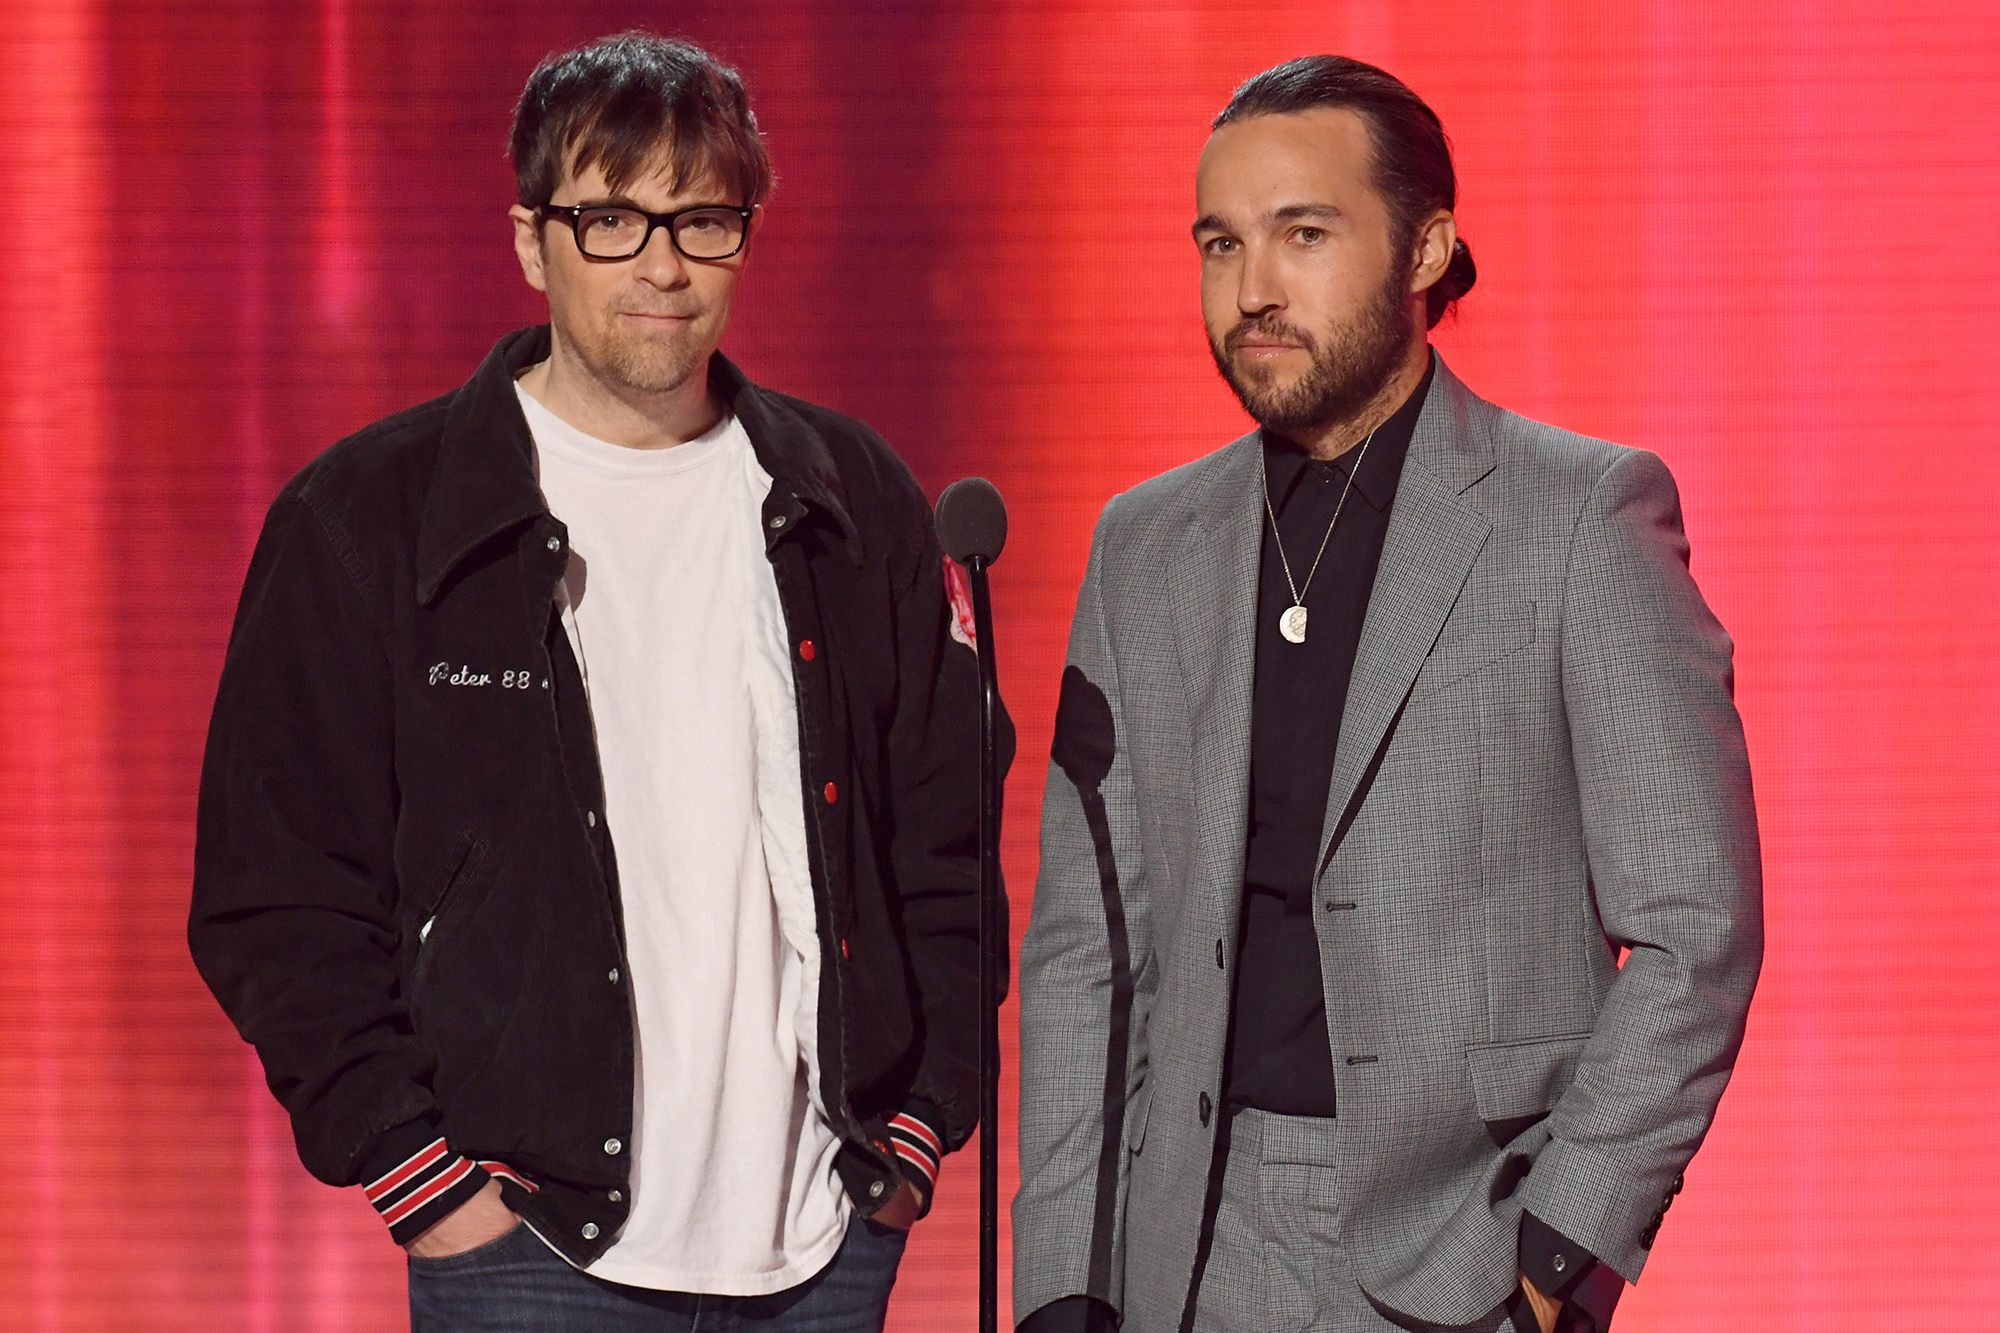 Rivers Cuomo and Pete Wentz